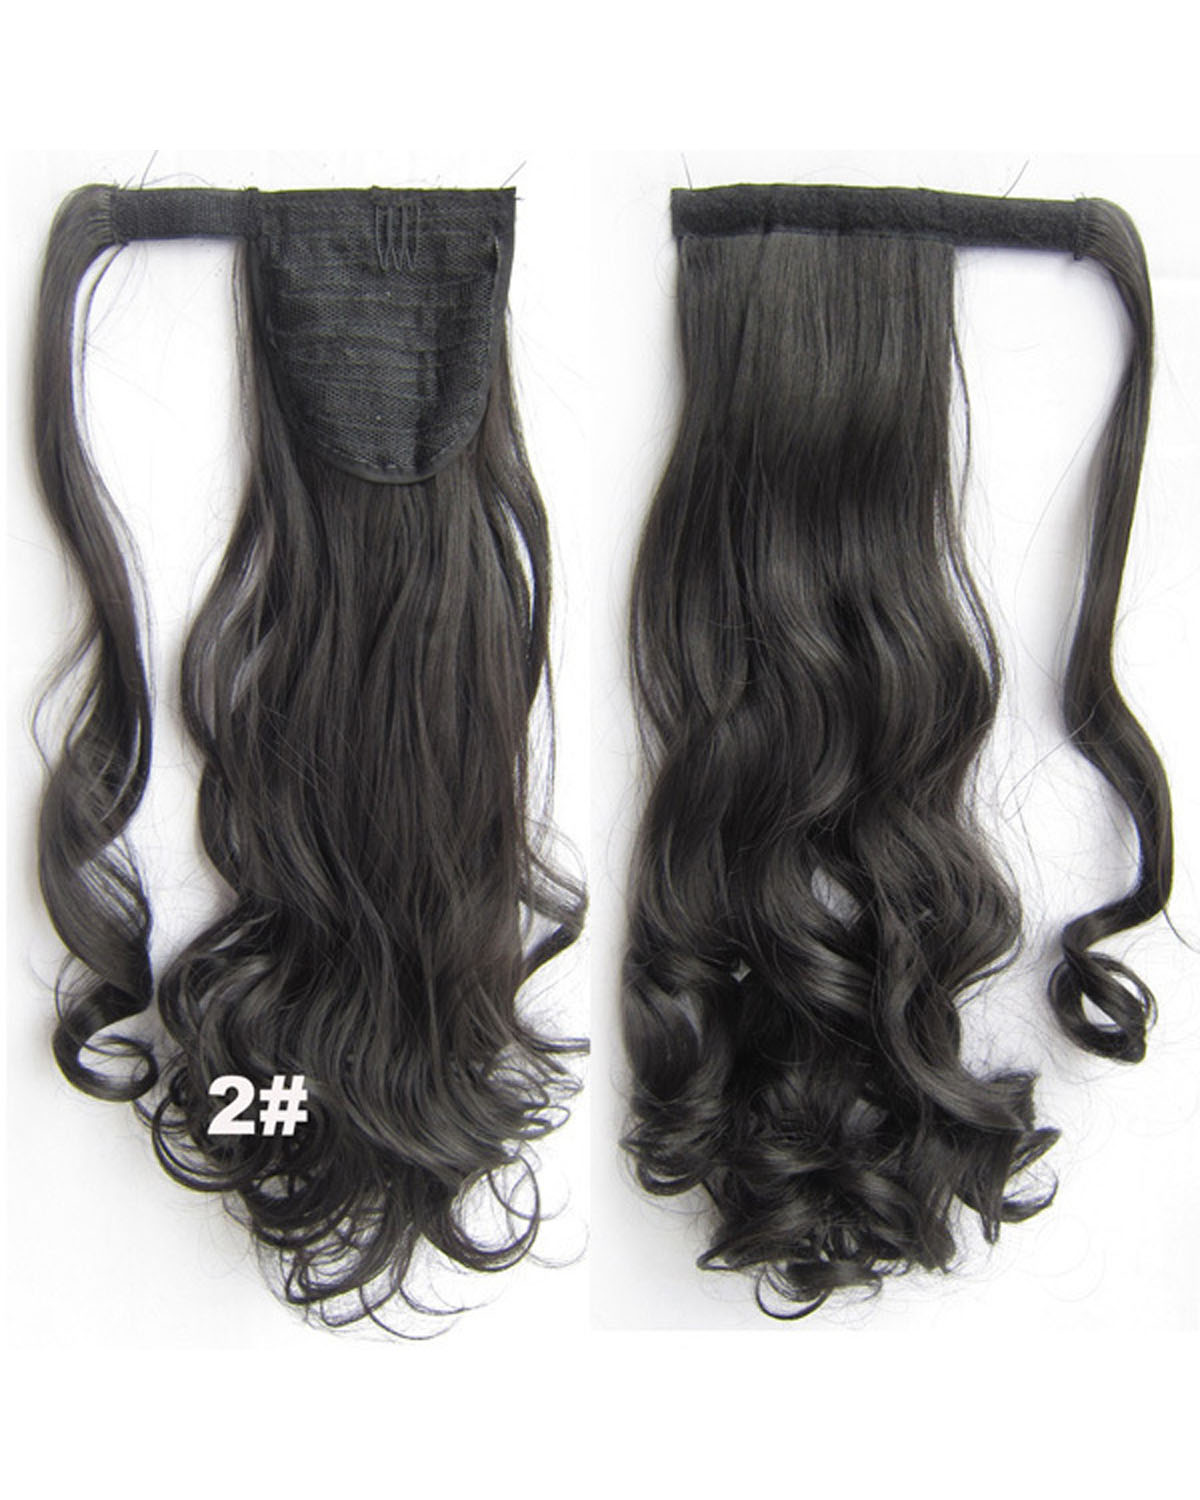 22 Inch Lady Dreamy Curly and Long Wrap Around Synthetic Hair Ponytail 2#